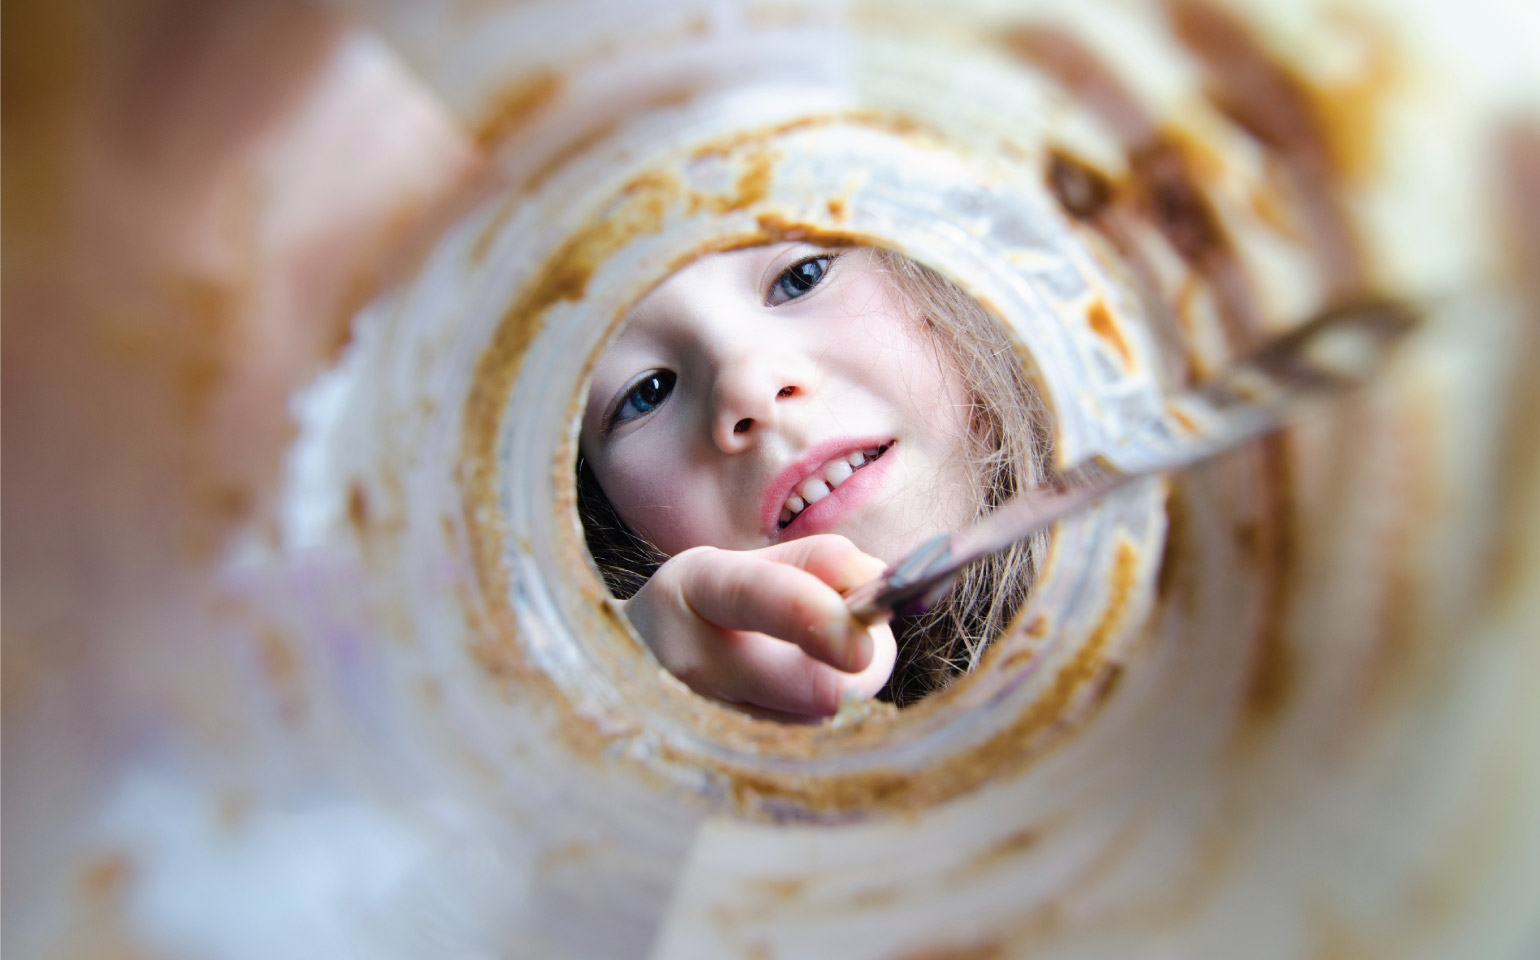 girl scraping peanut butter out of jar